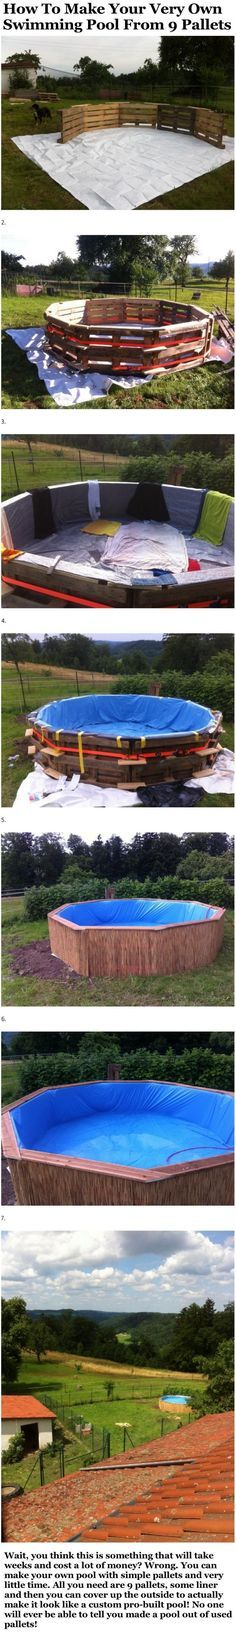 how to make a pool in your backyard